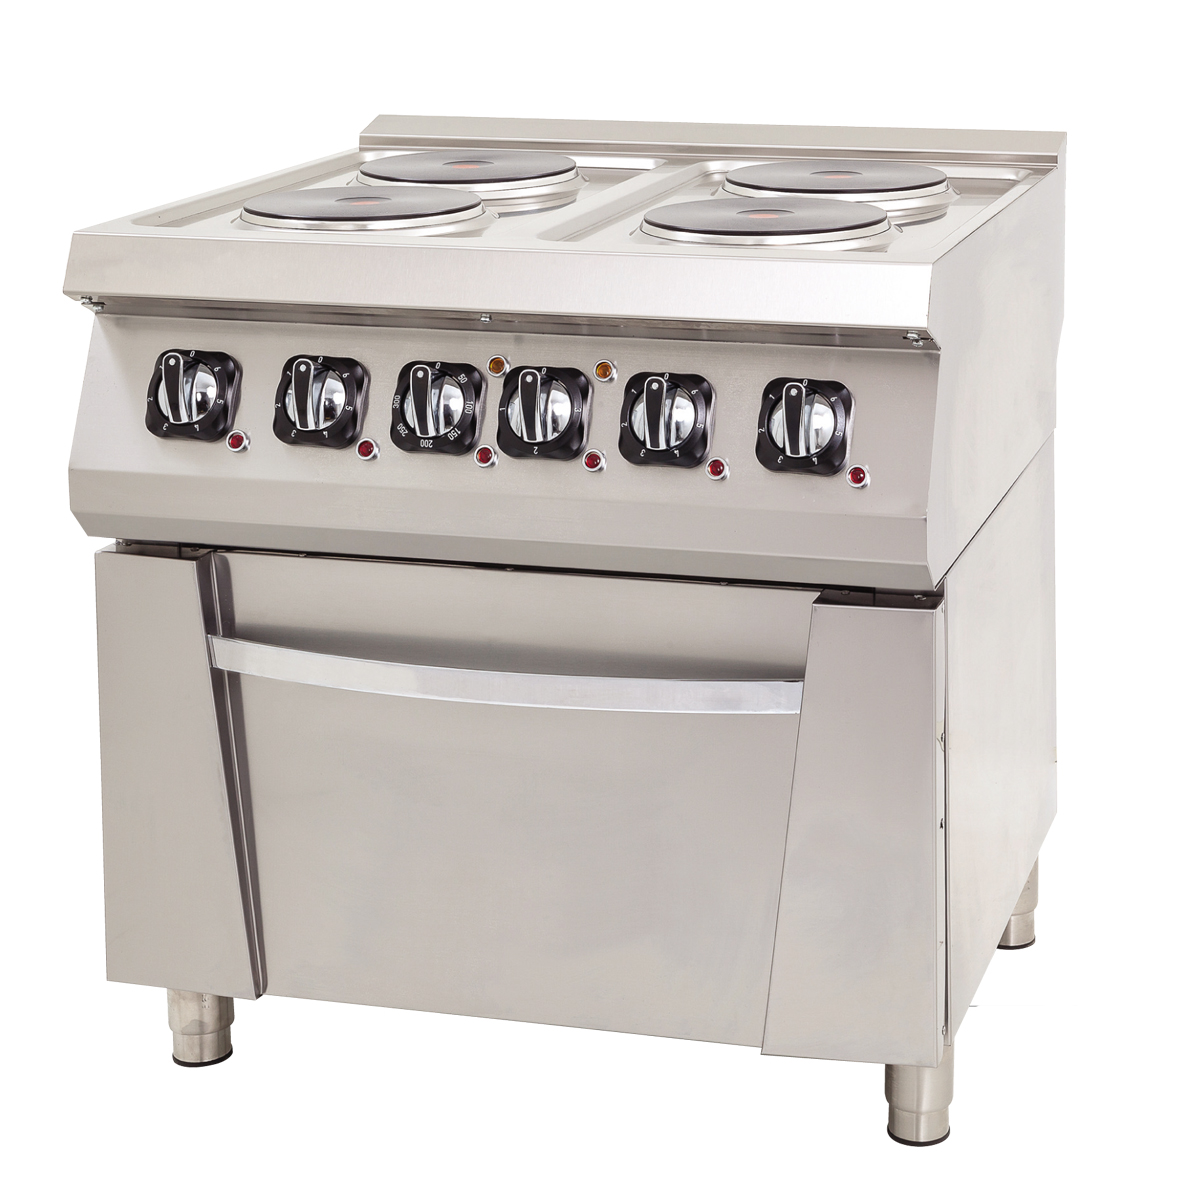 Electric Range with Oven - 80x70